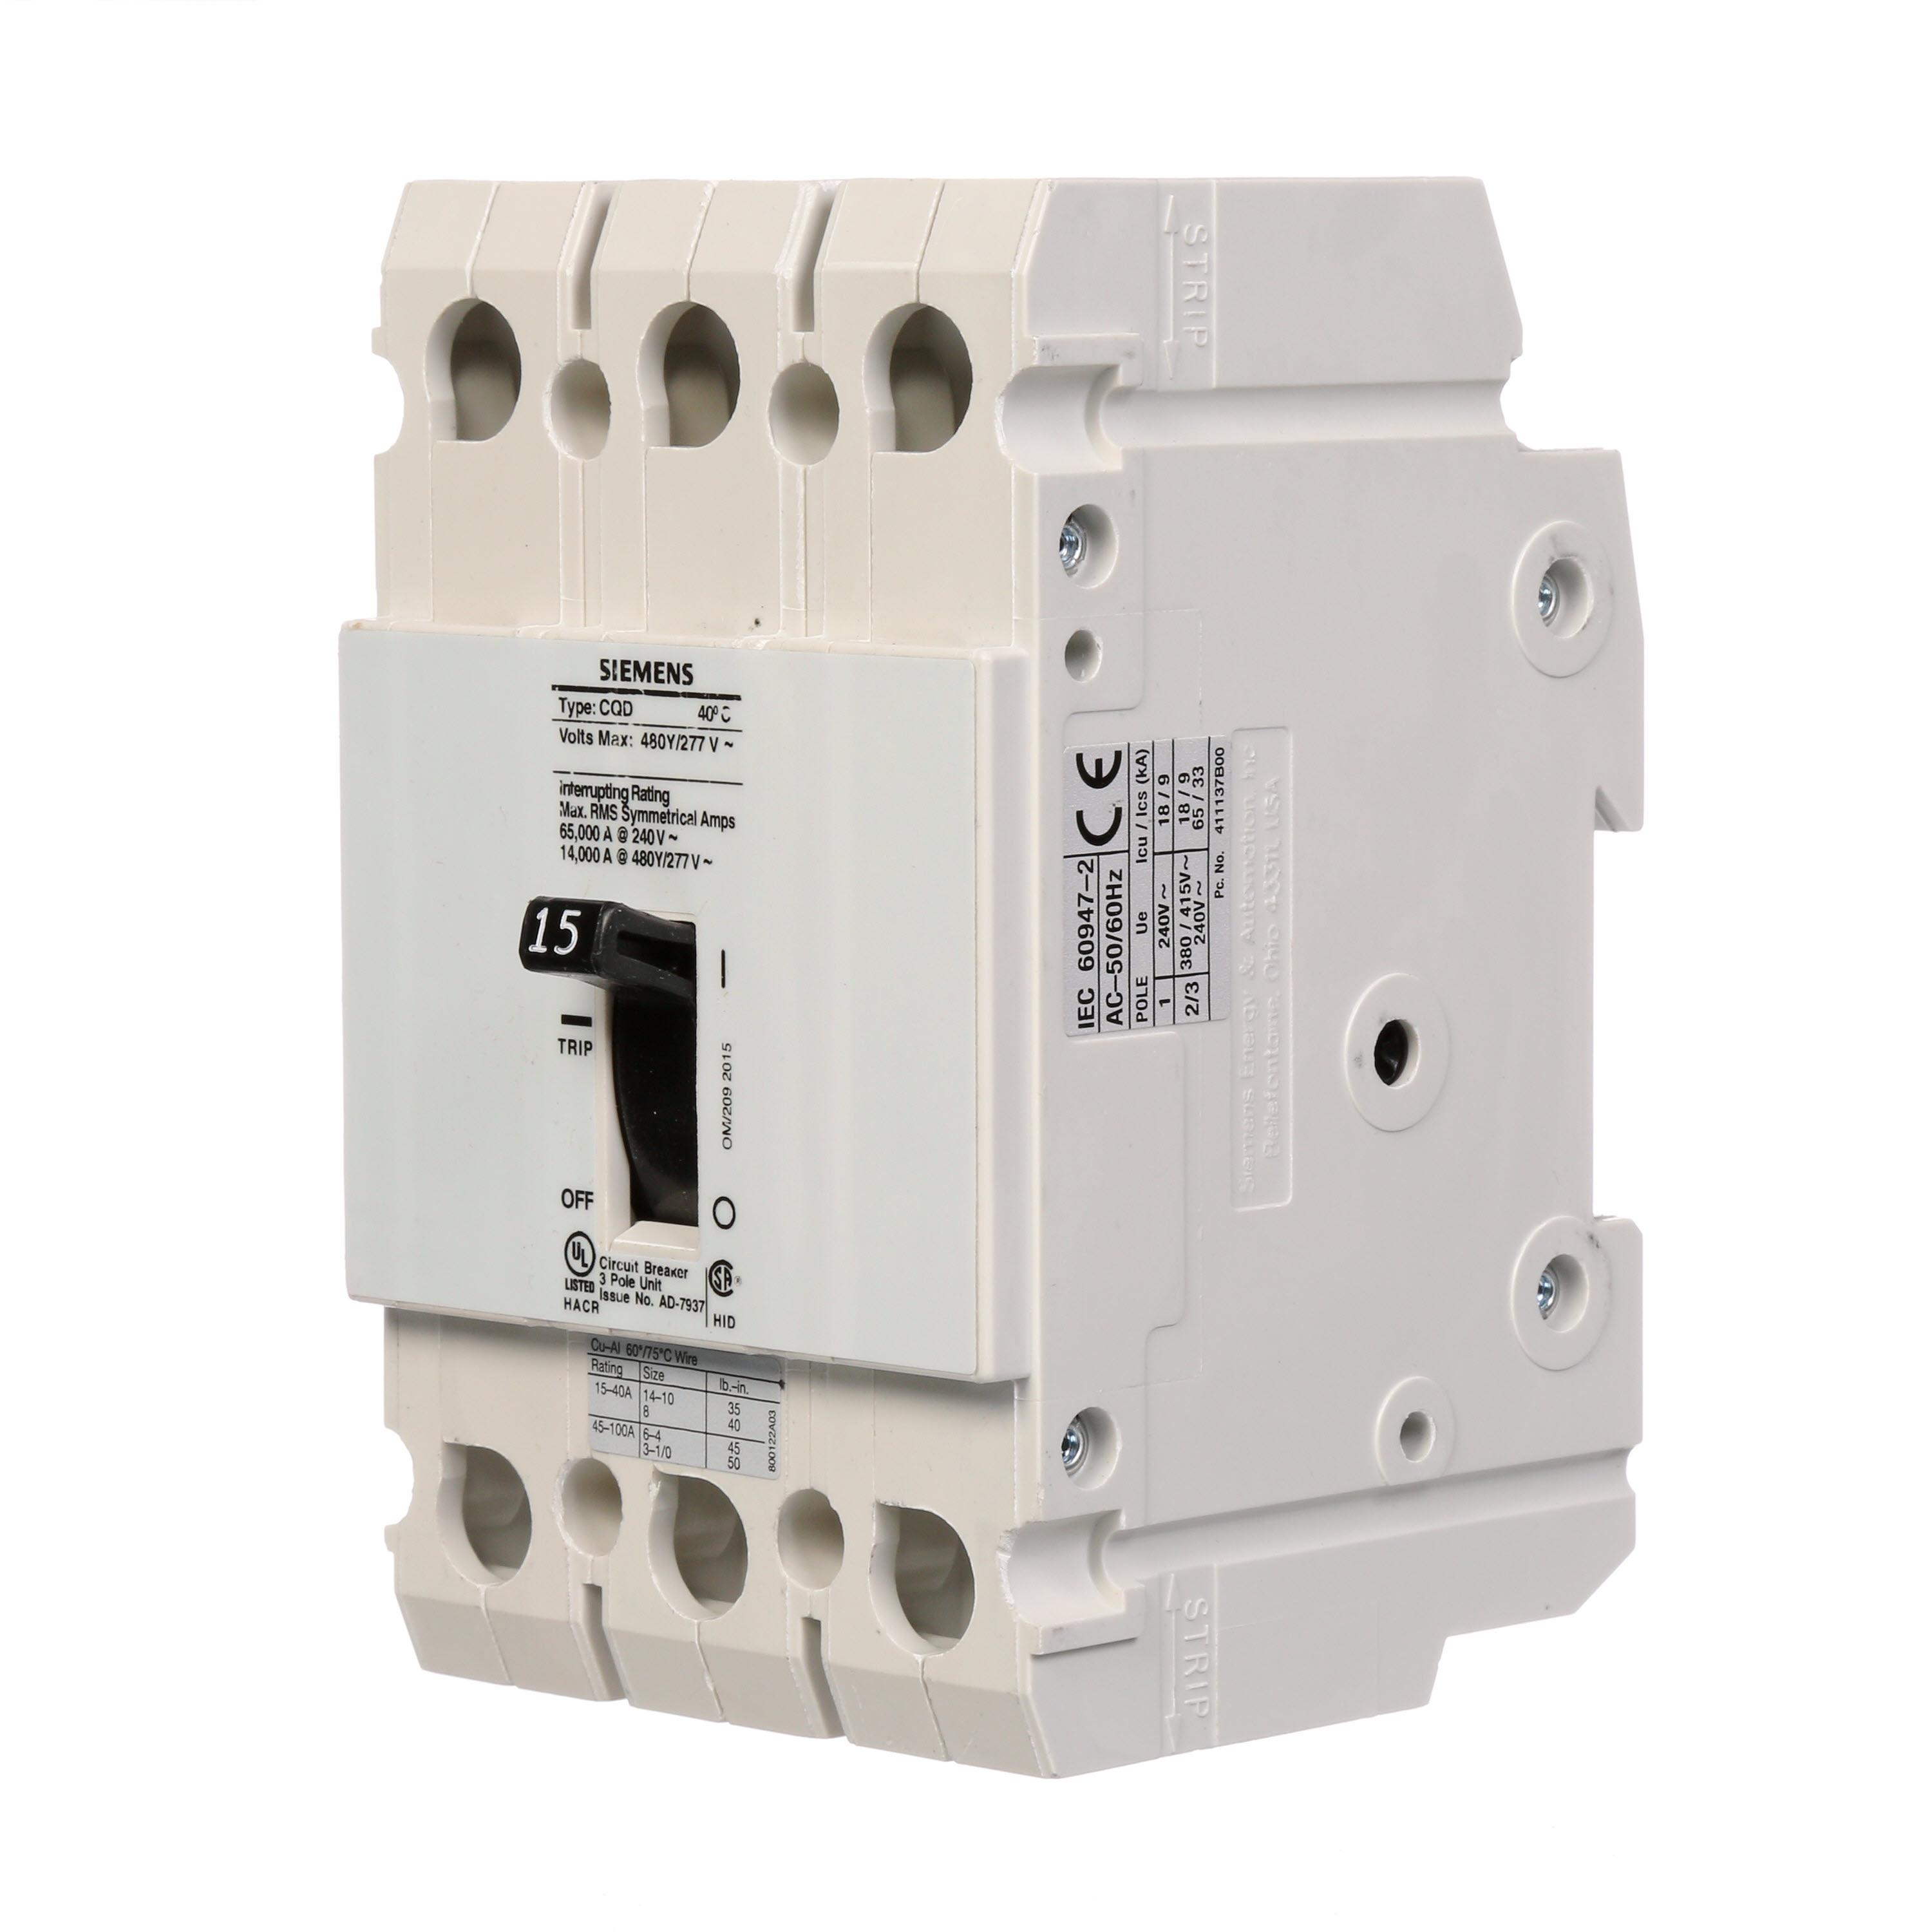 Siemens CQD315 Molded Case Breakers - Crescent Electric Supply Company